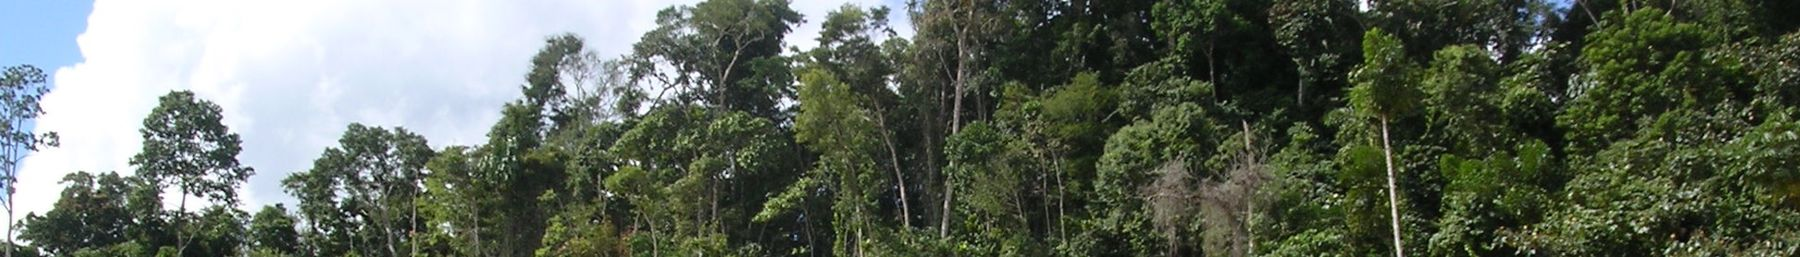 WV banner Pando department Tropical forest.jpg